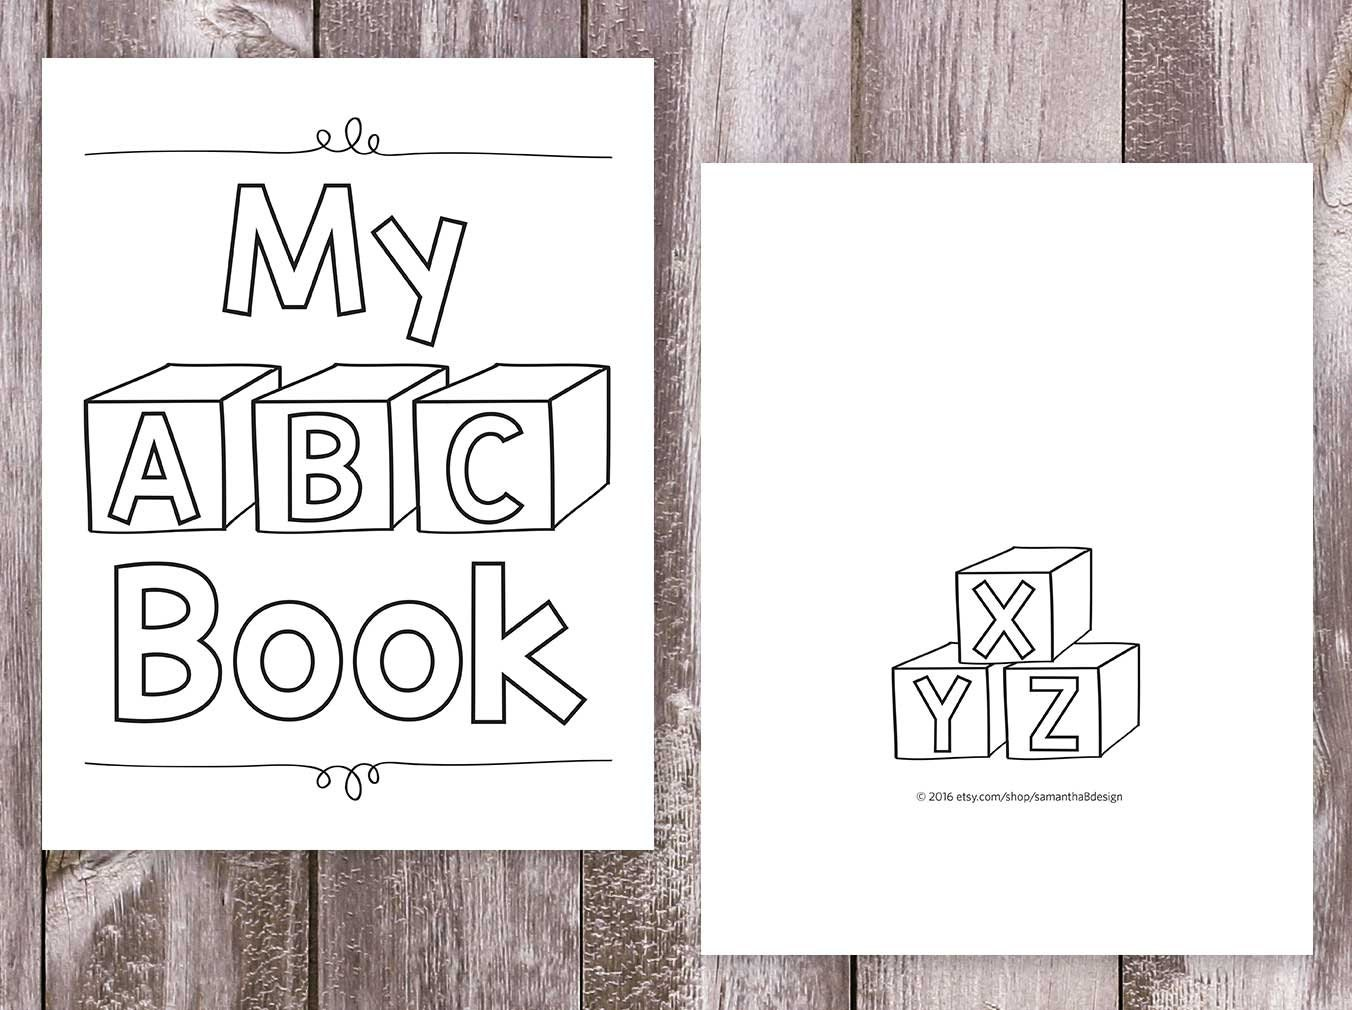 Alphabet Coloring Books / Printable Coloring Pages / My ABC Book / Letter Practice / Preschool ...